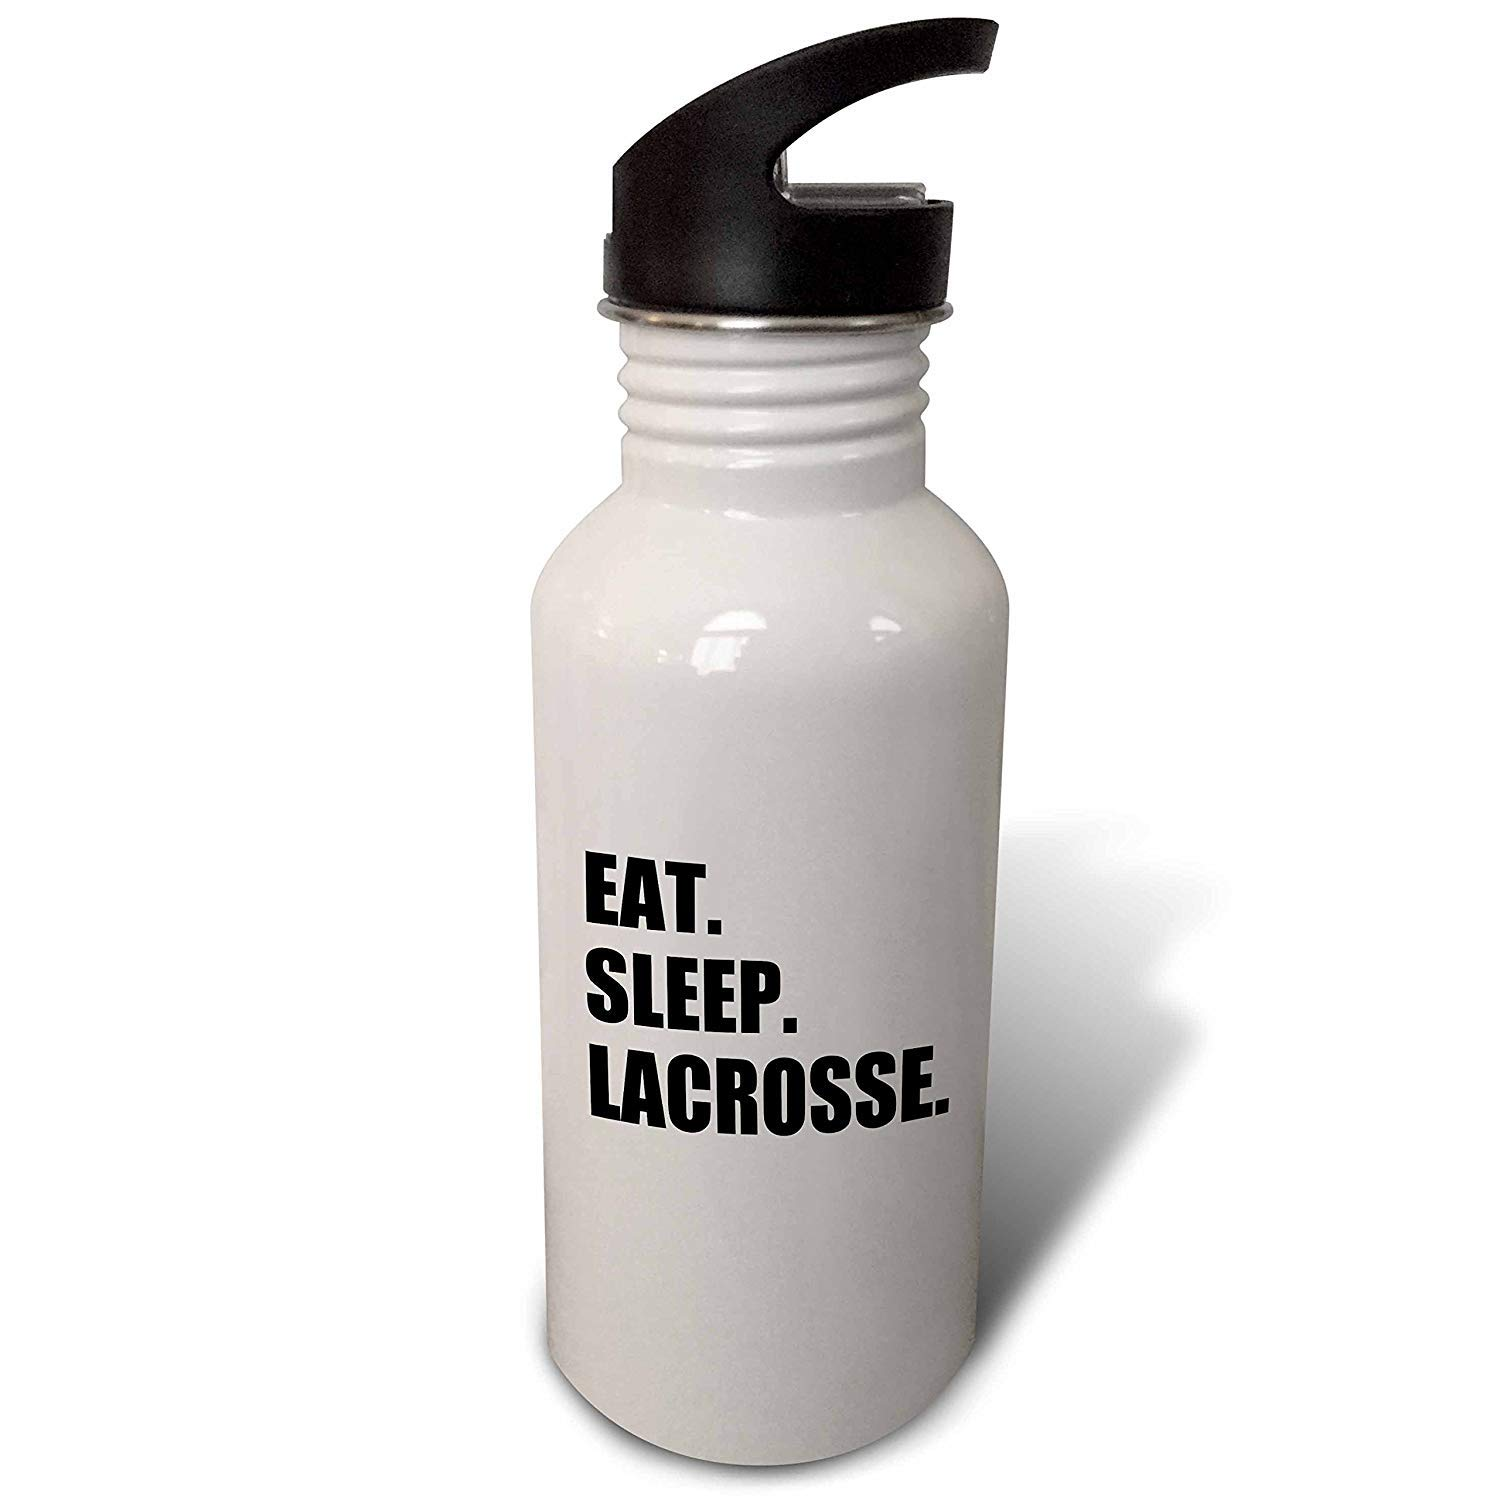 Yohoba Inspirationzstore Eat Sleep Series Eat Sleep Lacrosse Stainless Steel Sport Water Bottle White 20 Ounces